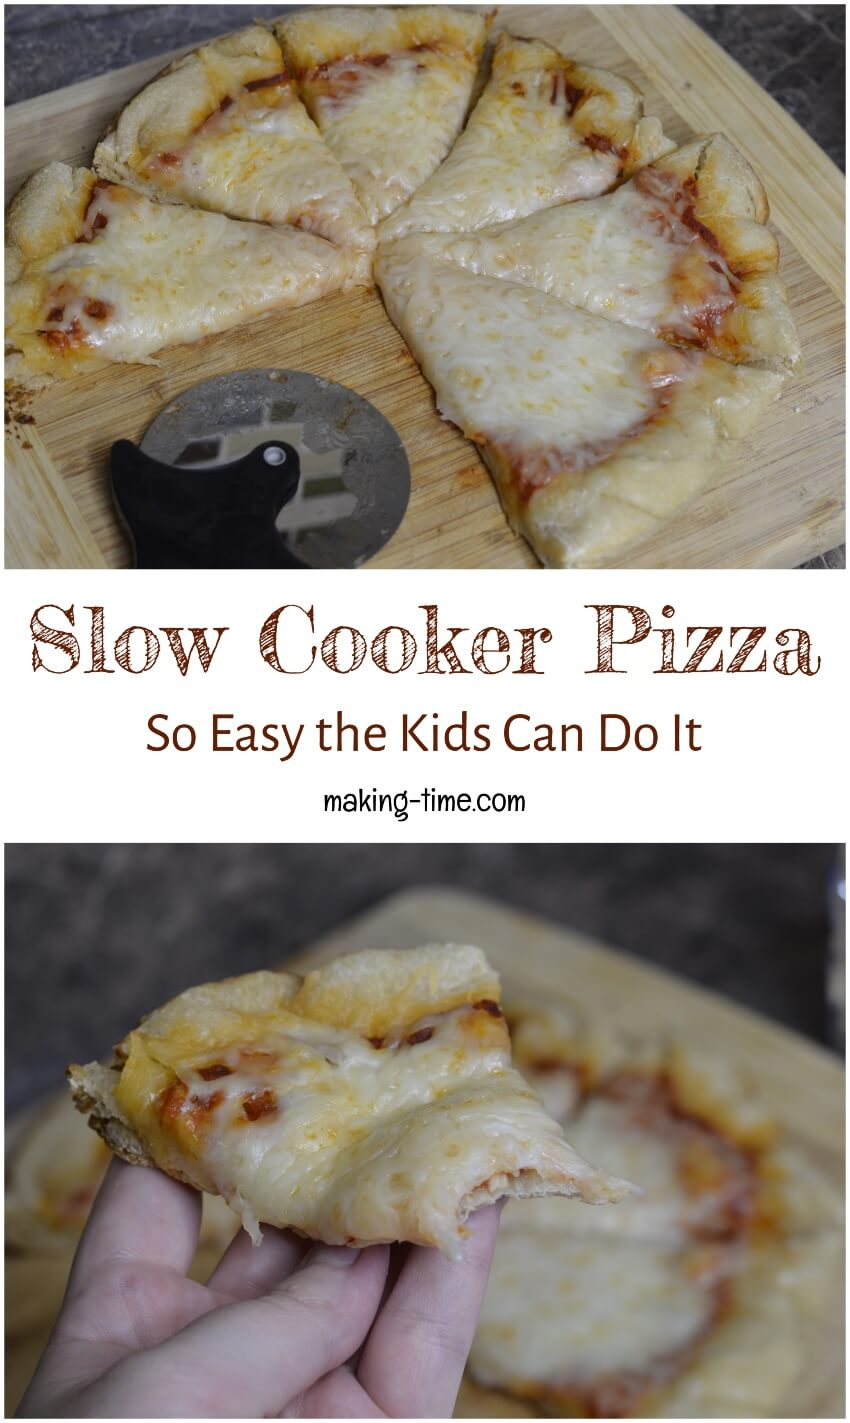 Slow Cooker Pizza: So Easy the Kids Can Do It | #slowcooker #recipe #pizza #kidsinthekitchen